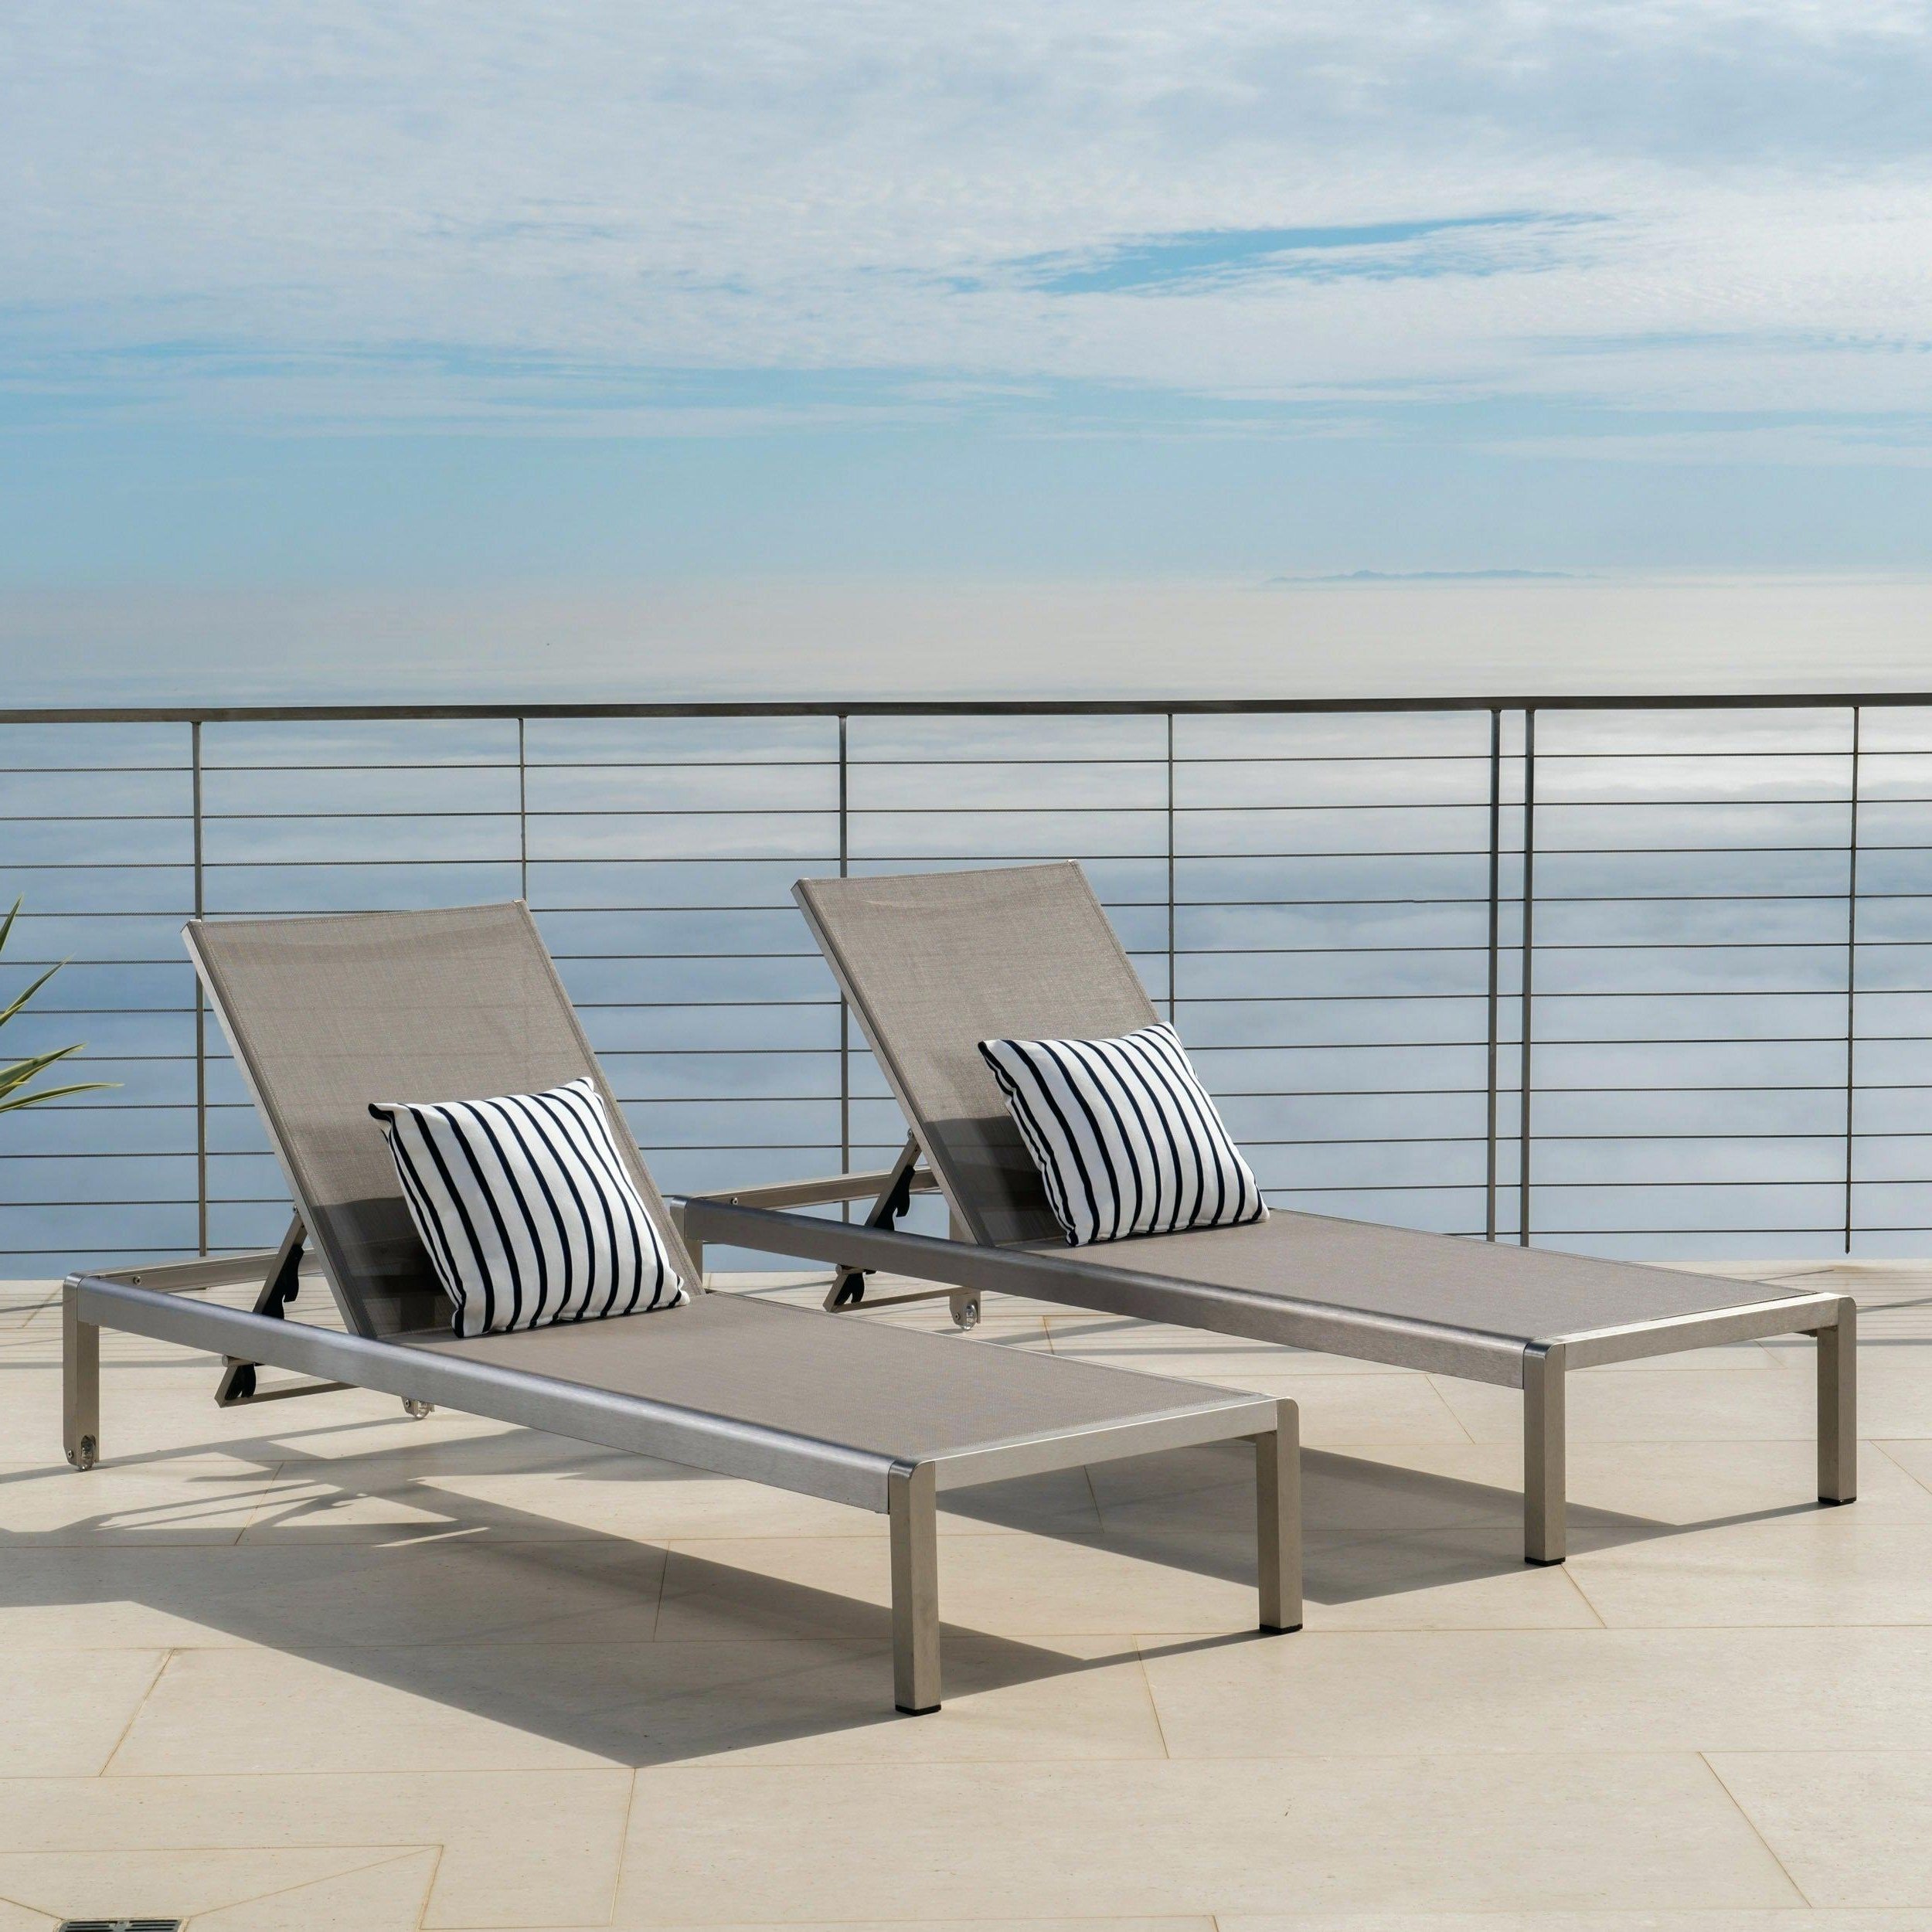 Most Current Jamaica Outdoor Chaise Lounges In Outdoor Chaise Lounge – Marcofinearts (View 19 of 25)